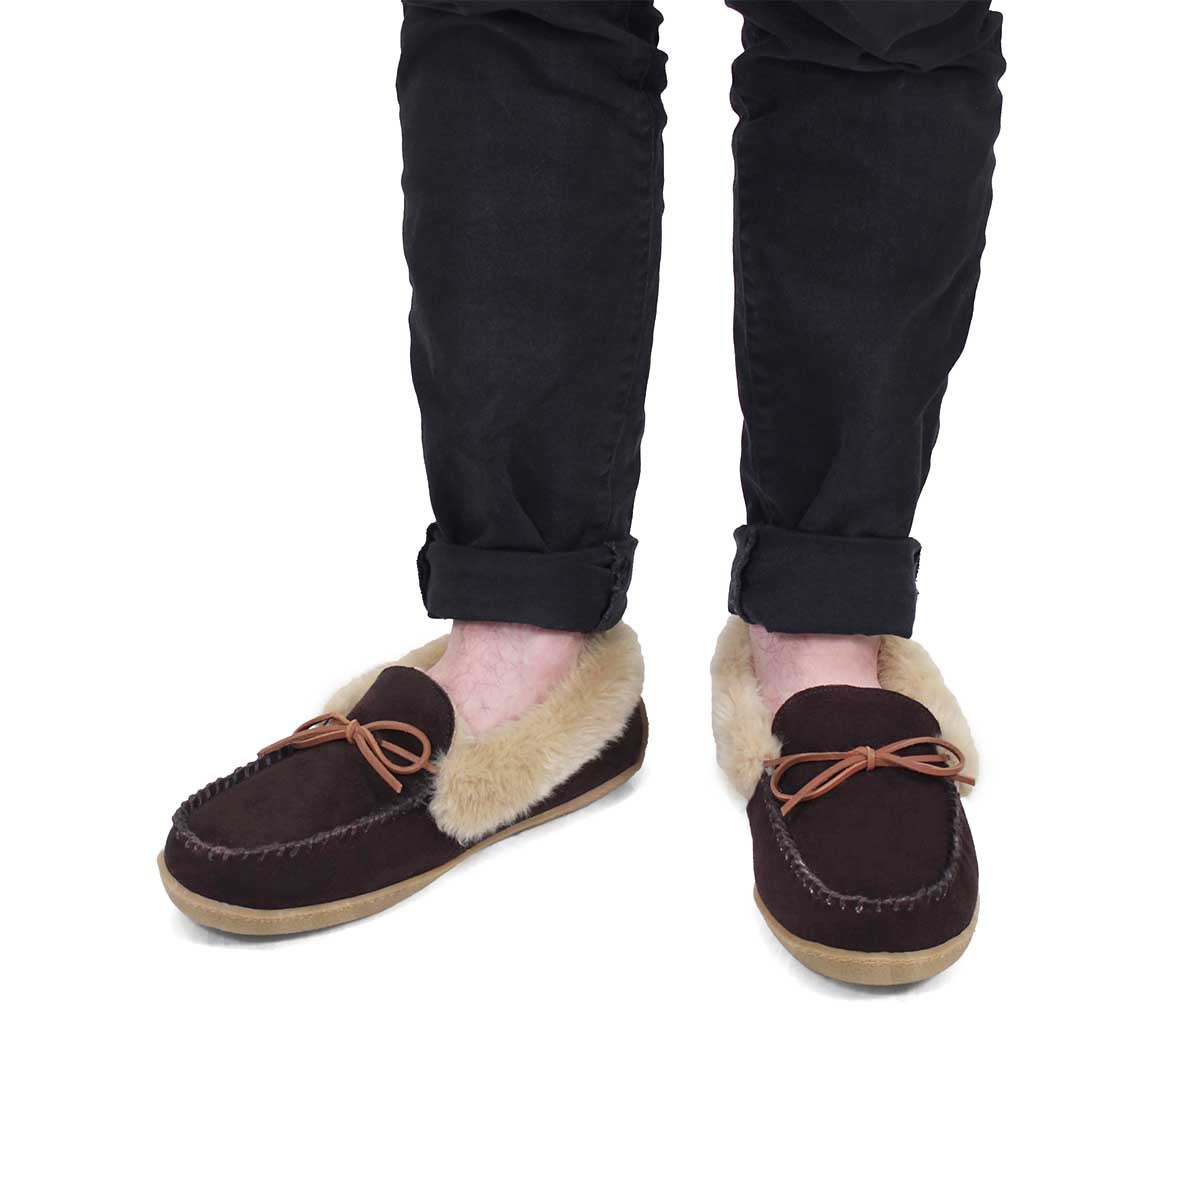 Mns Daniel rootbeer crepe sole lined moc